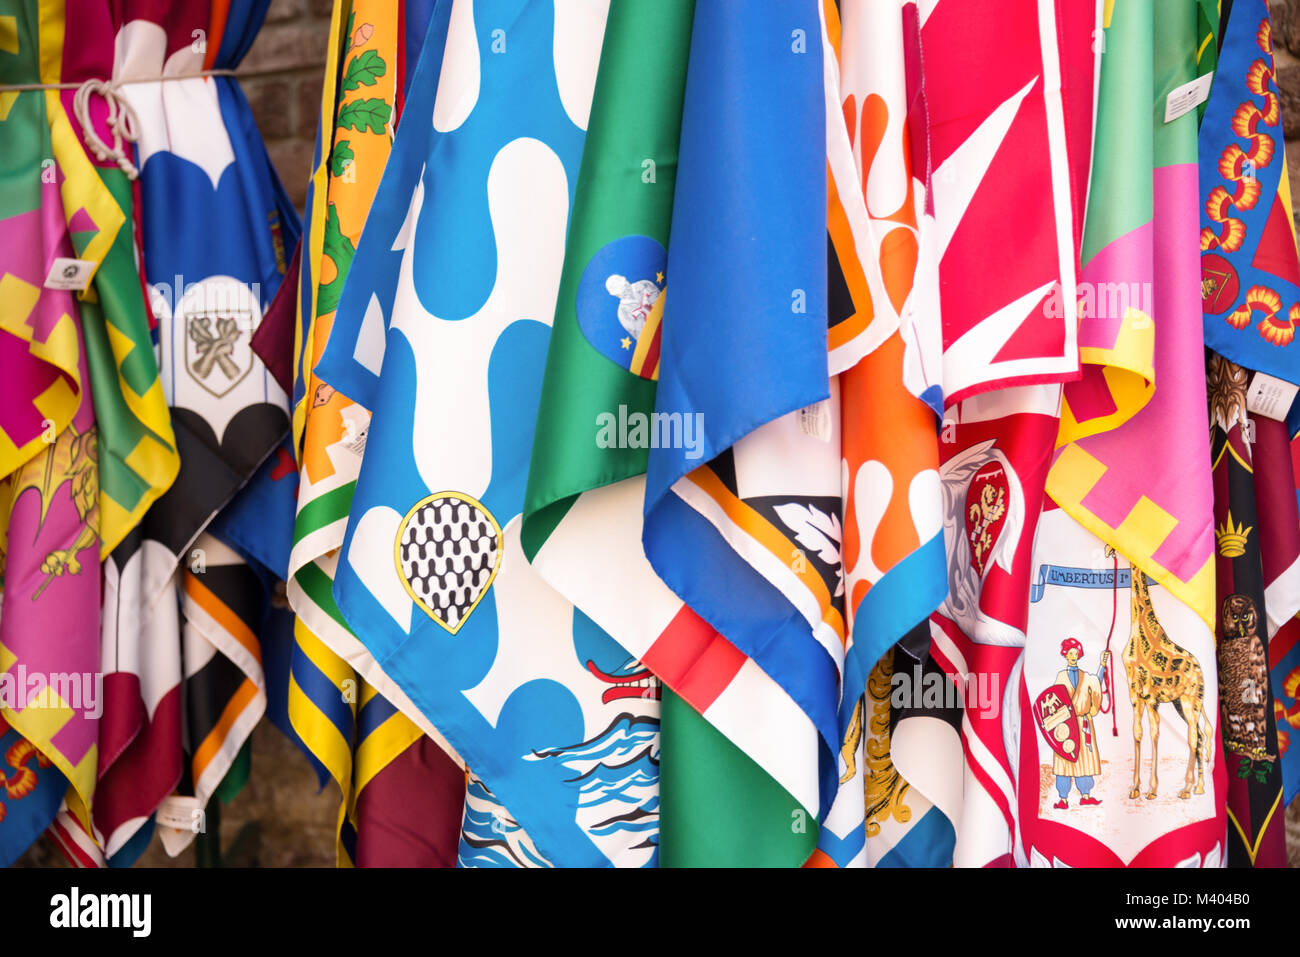 Flags of the Siena contrade (districts), Palio festival background, in Siena, Tuscany, Italy Stock Photo